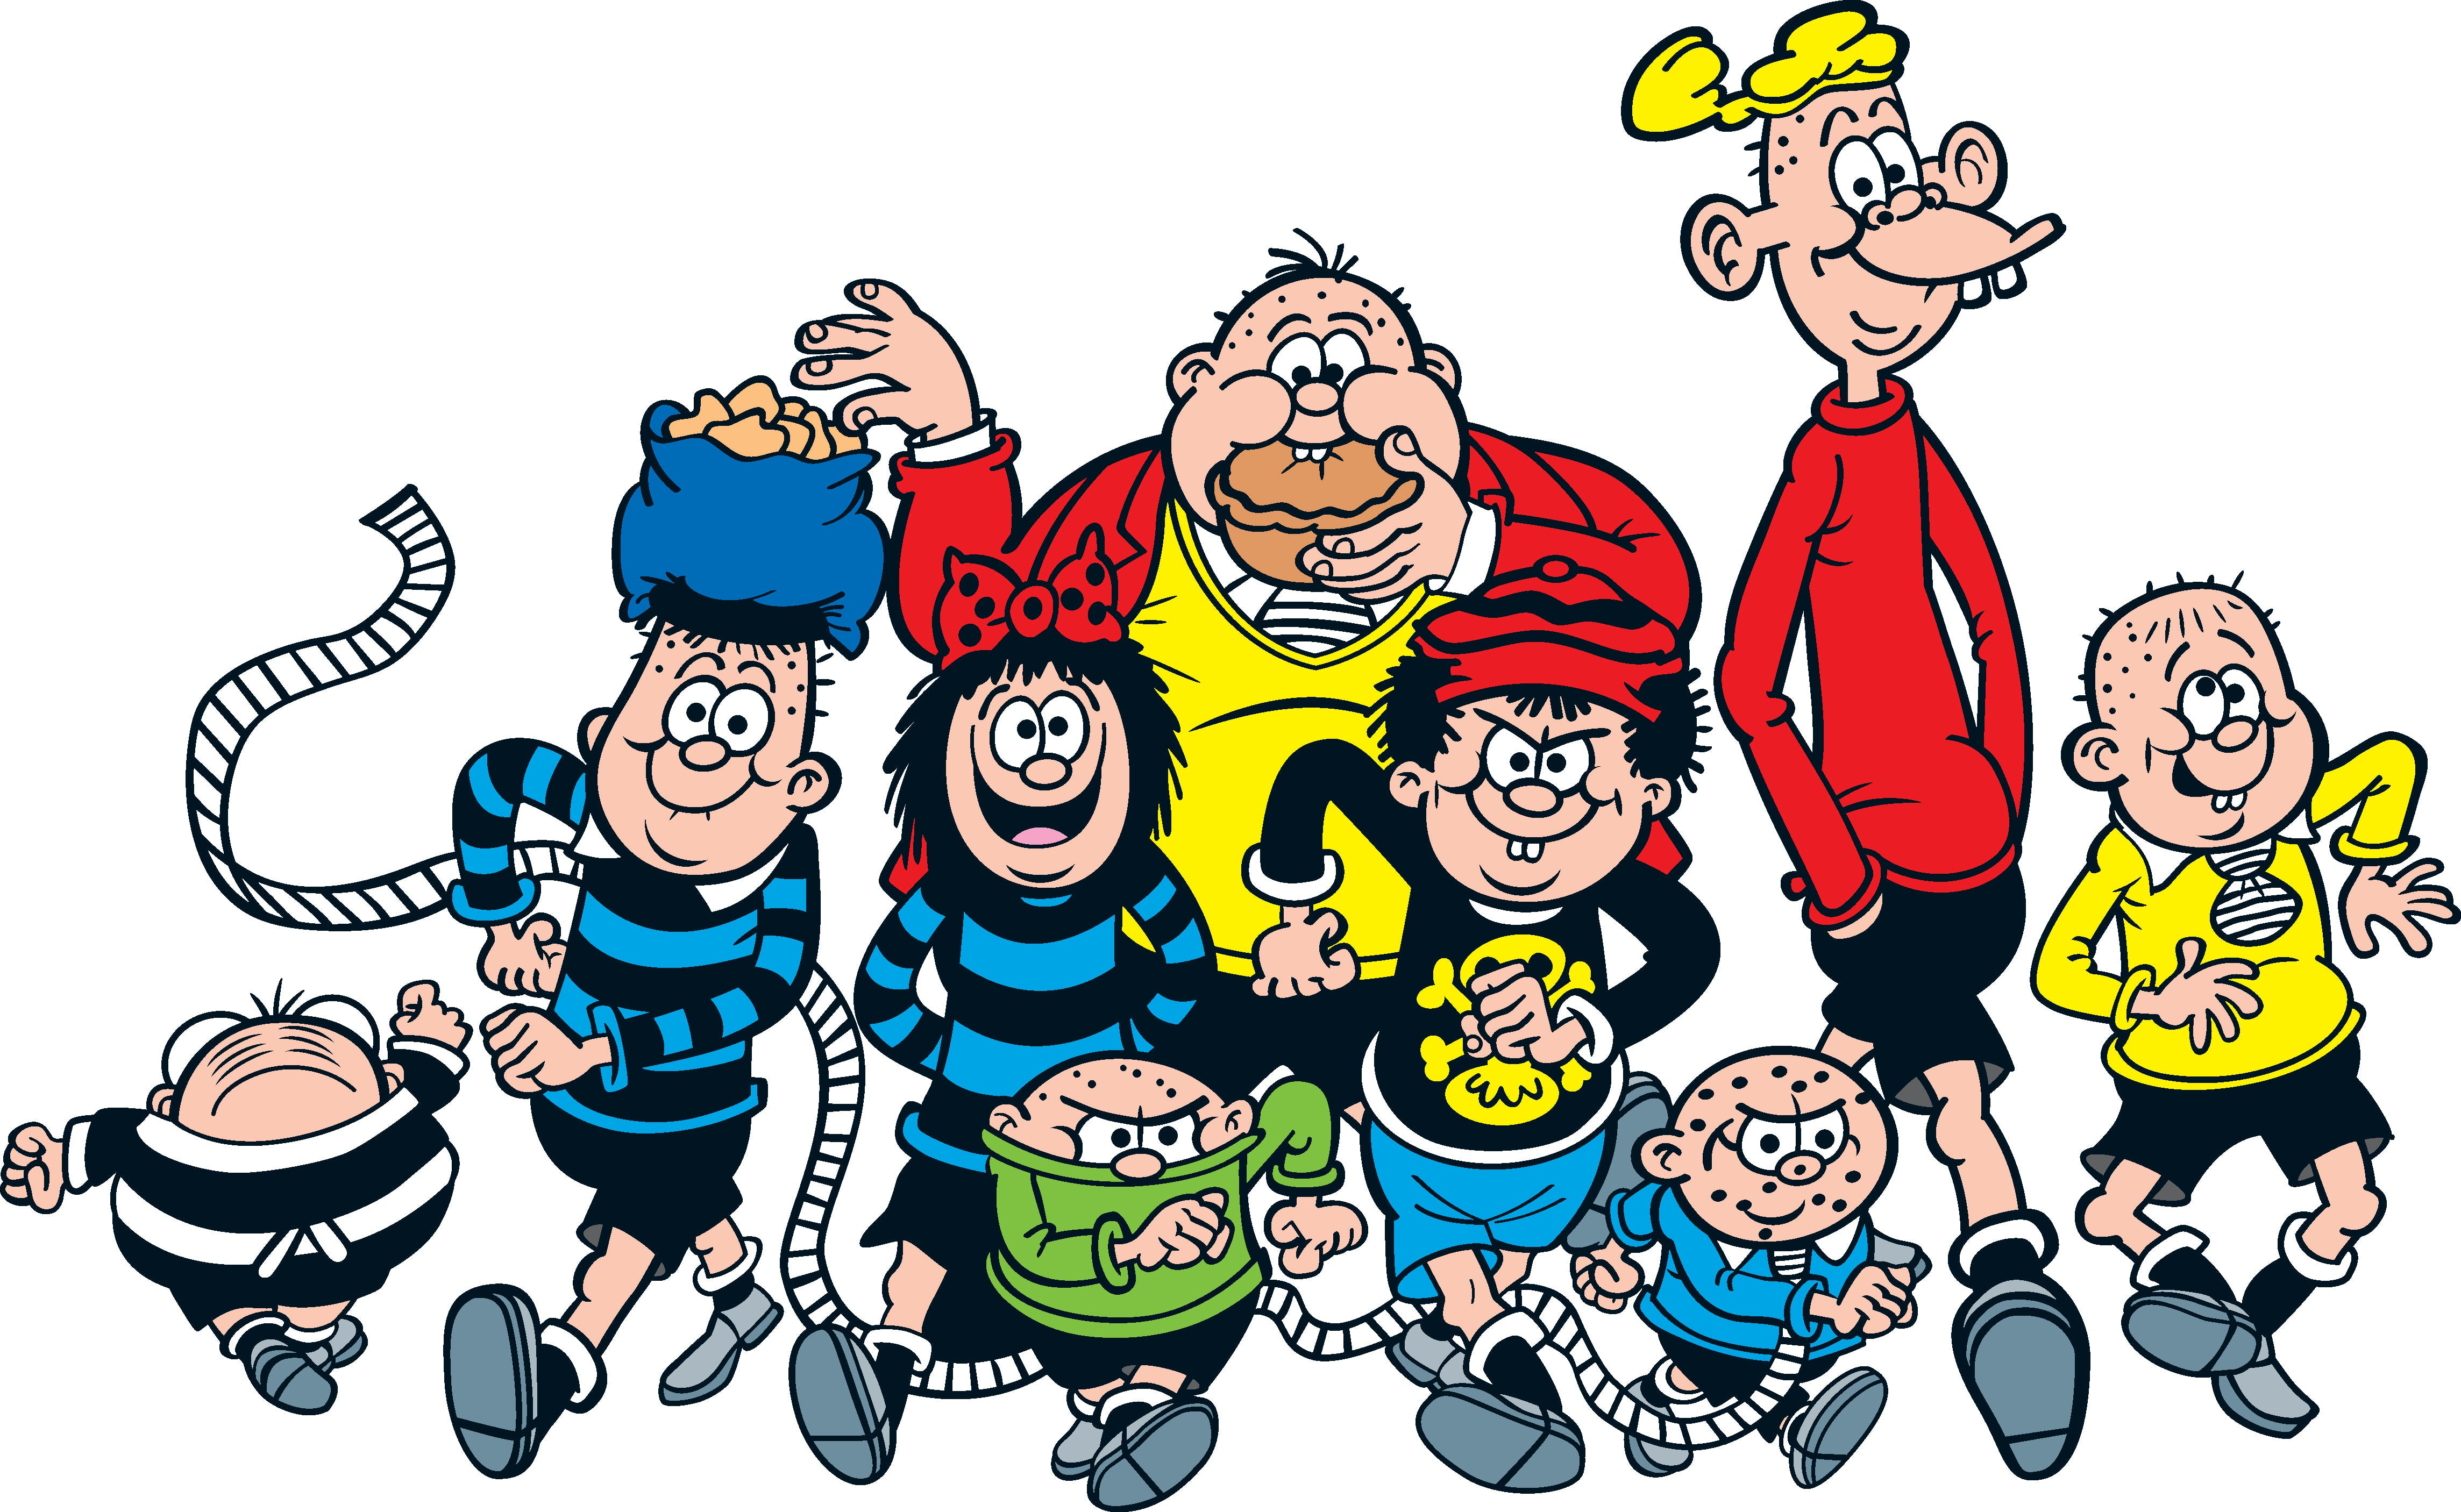 The Bash Street Kids from Beano - drawn by David Sutherland since 1962